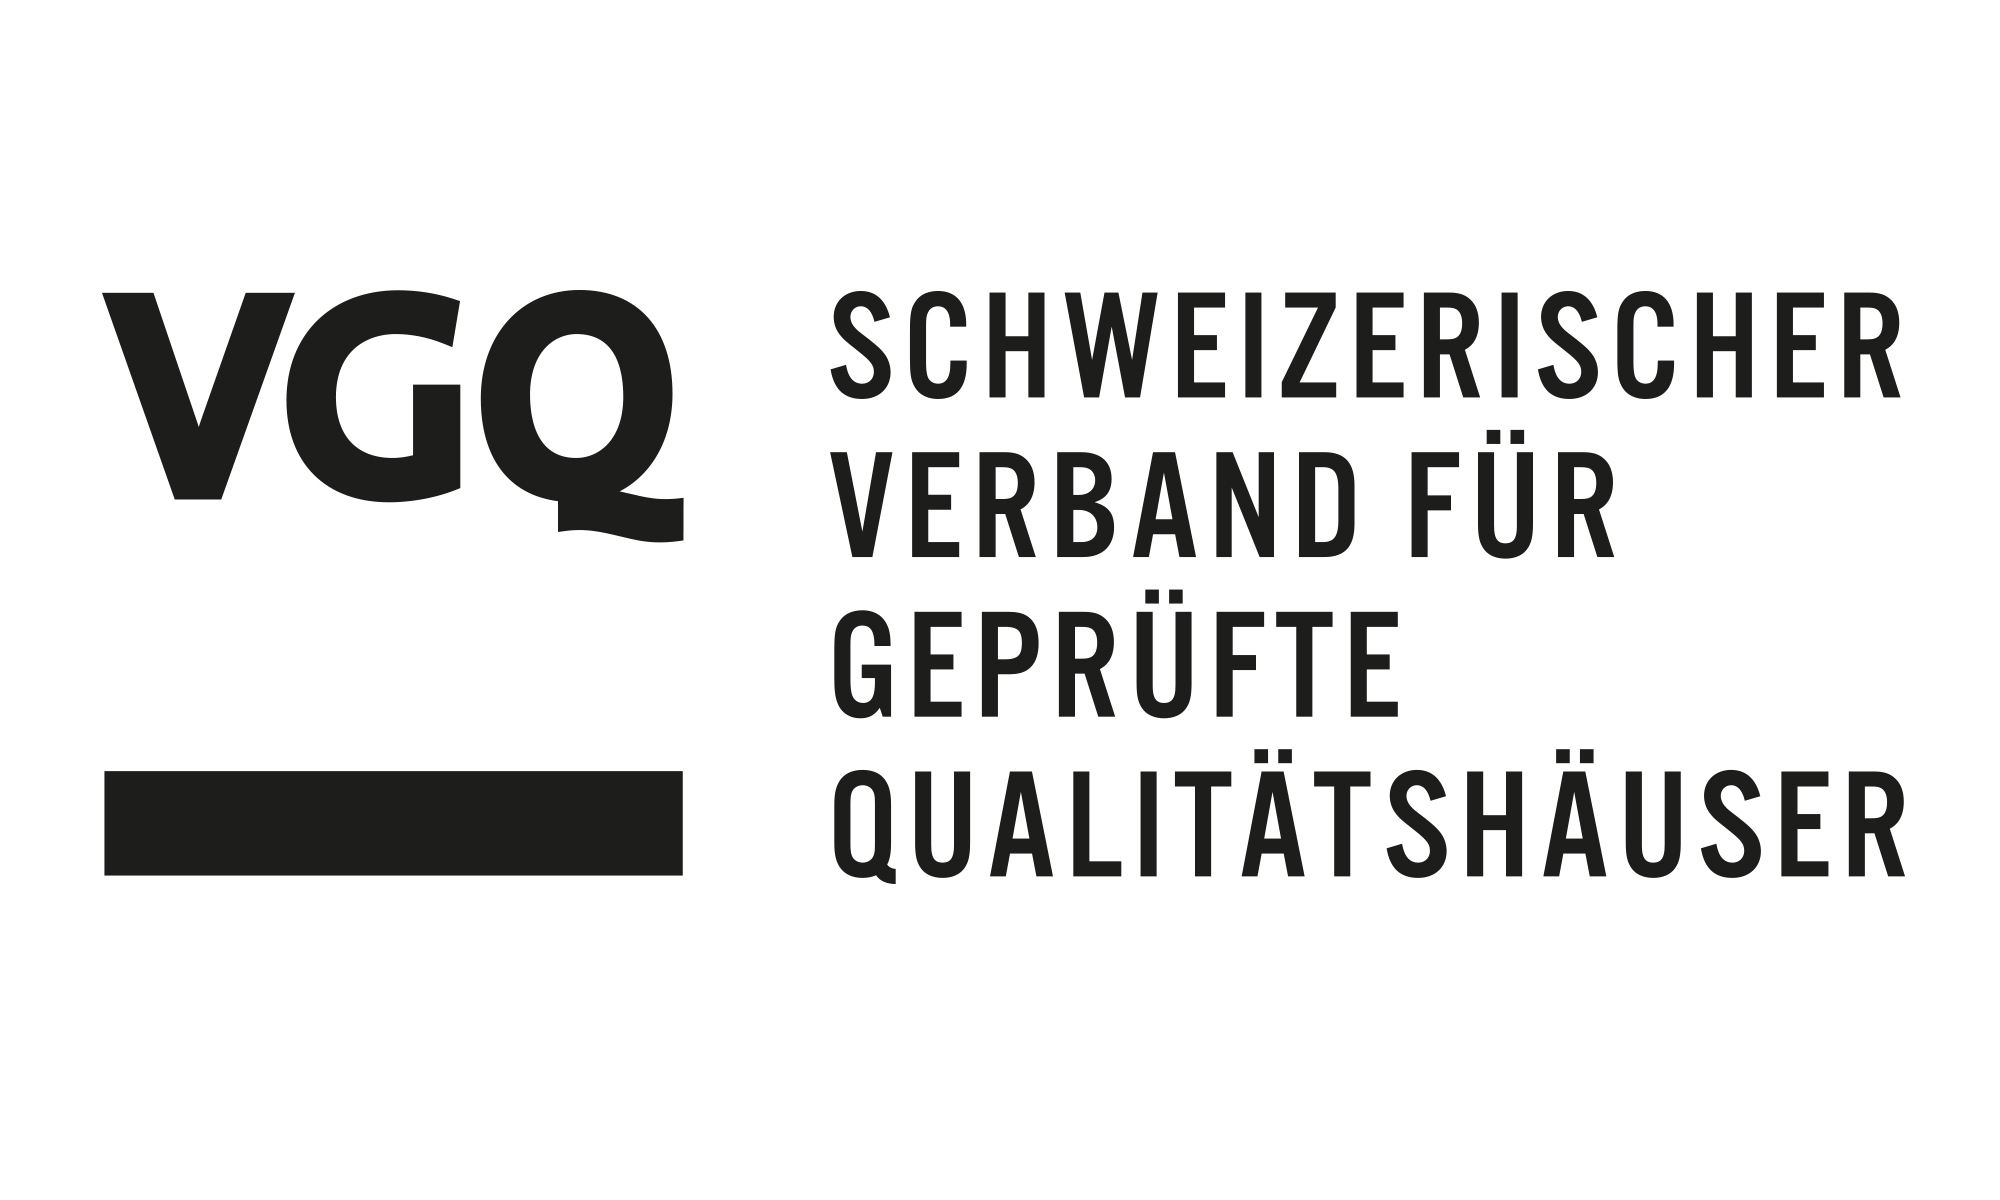 Illustration of the VGQ Lab from the Swiss Association for Certified Quality Houses